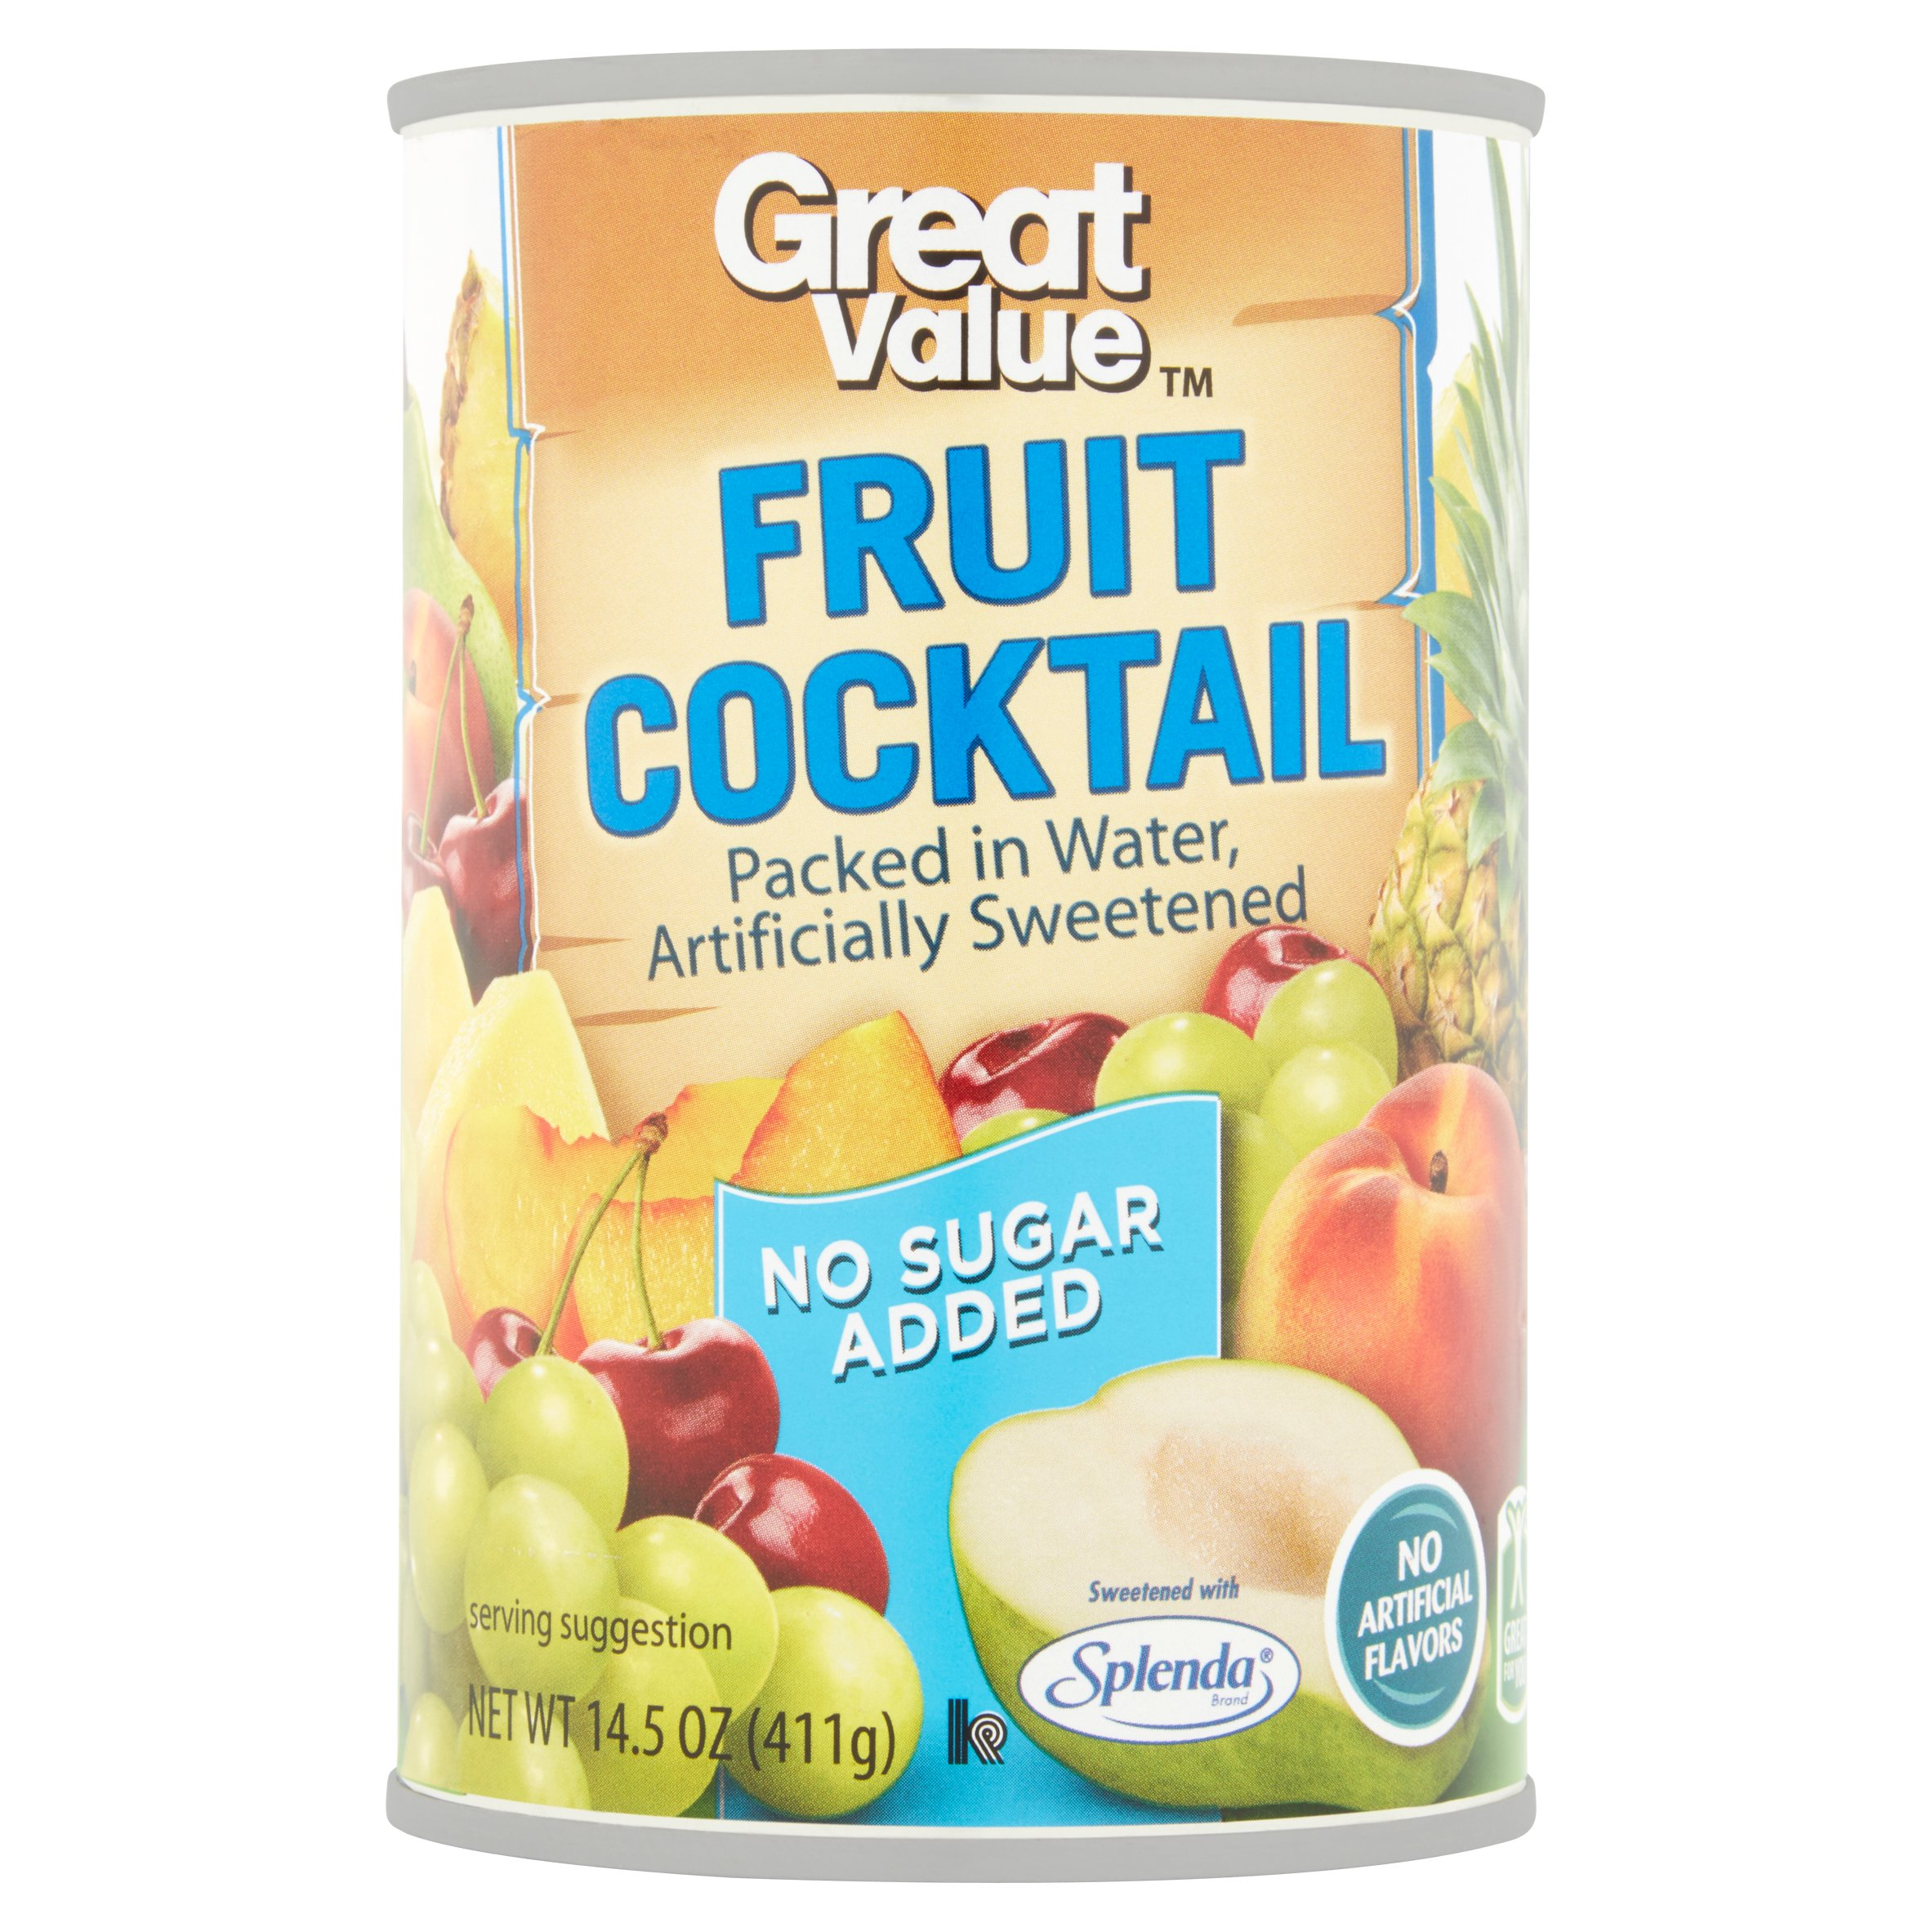 Great Value No Sugar Added Fruit Cocktail in Water, 14.5 oz